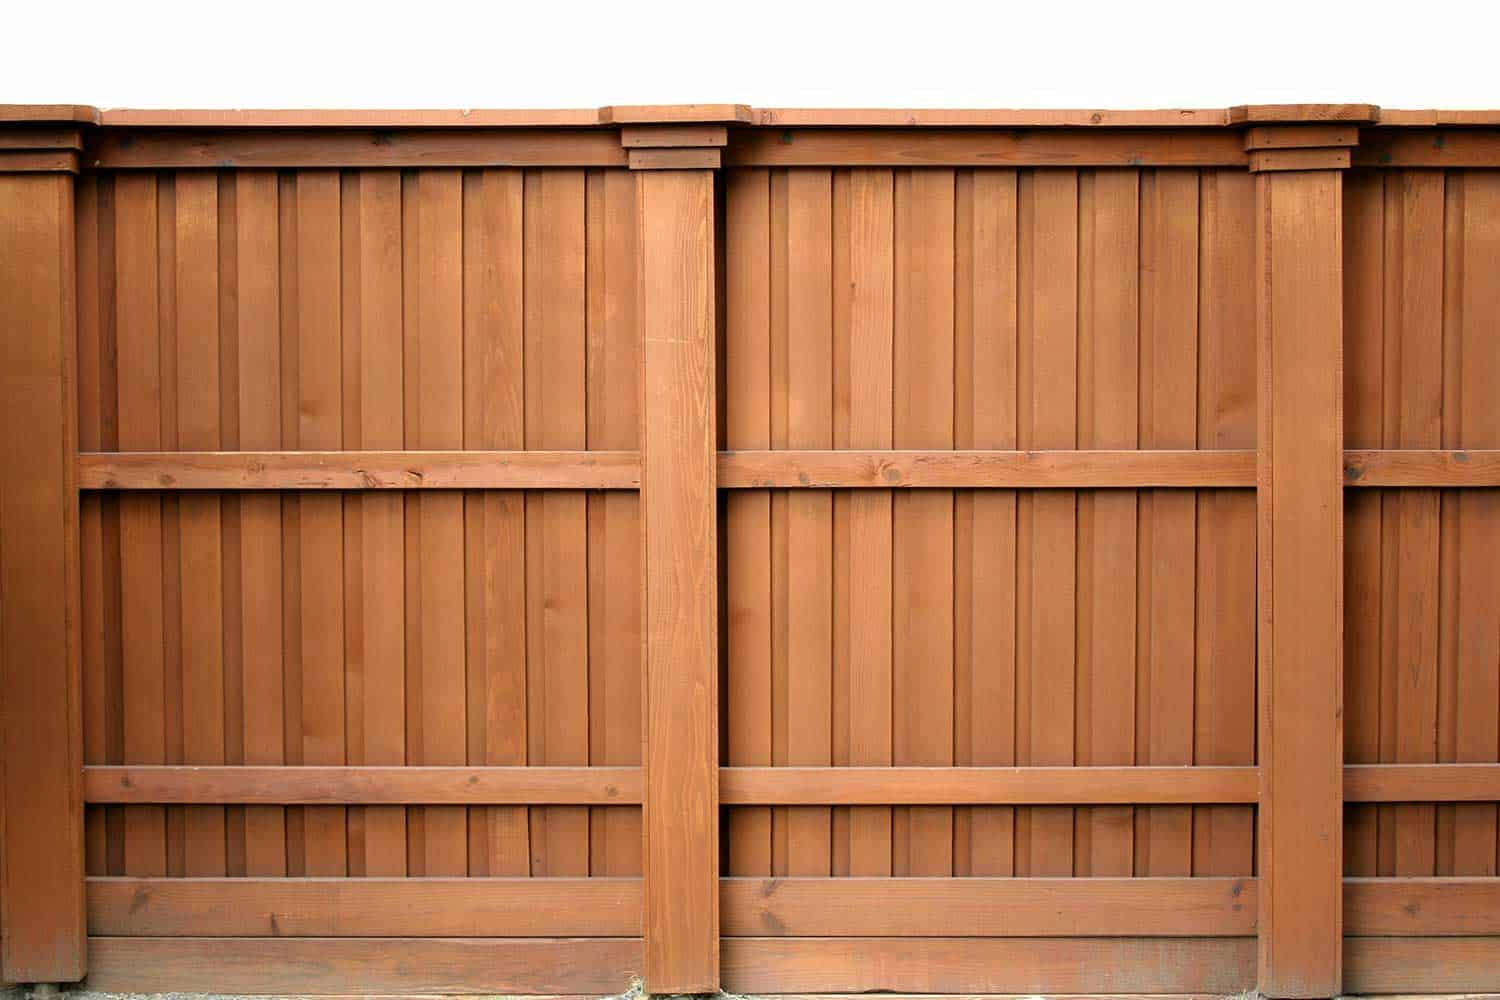 A tall wooden fence